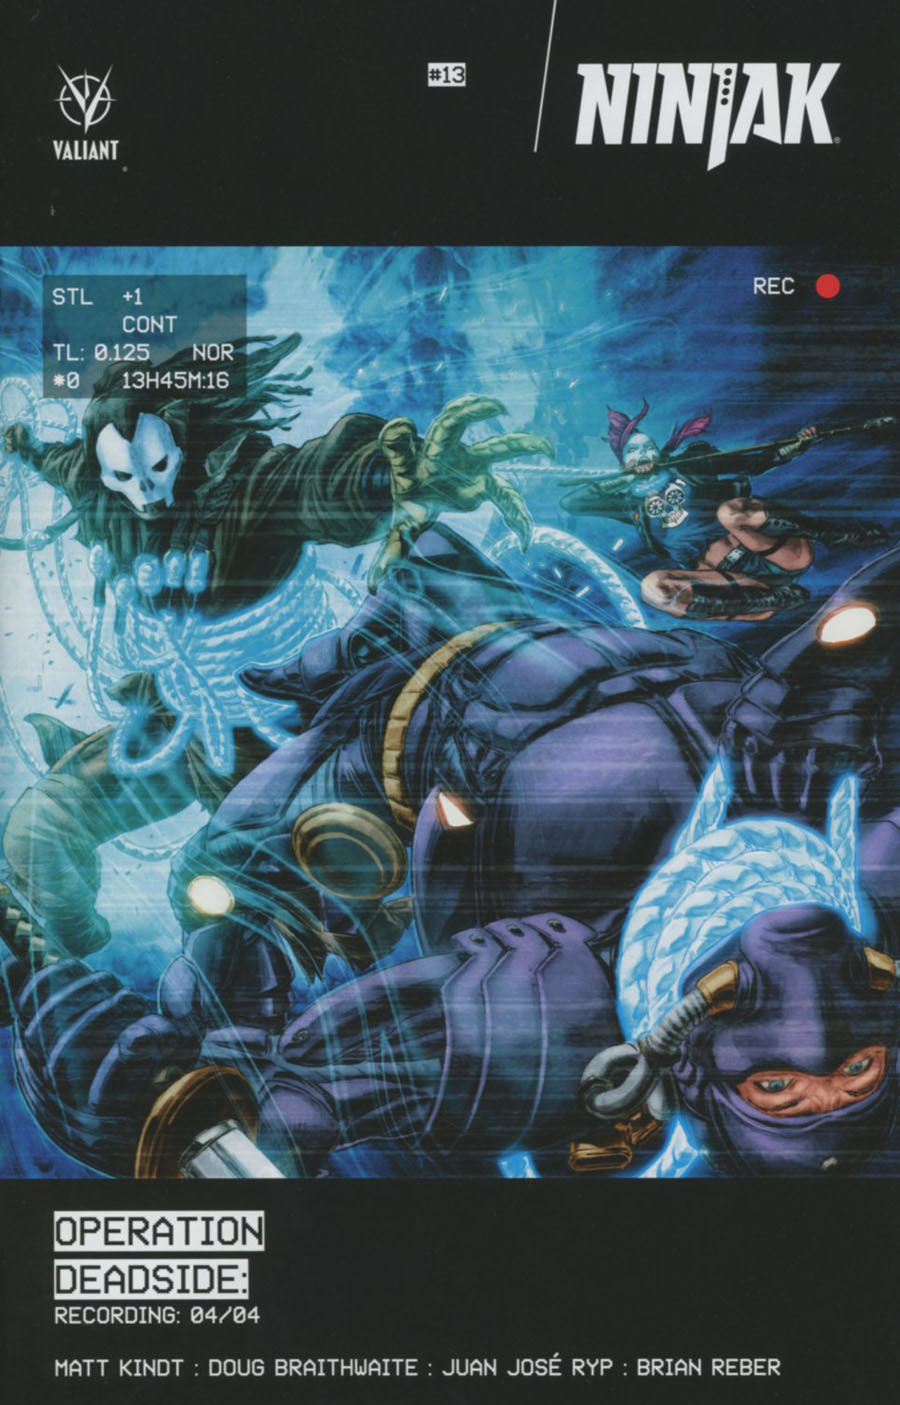 Ninjak Vol 3 #13 Cover A Regular Doug Braithwaite Cover